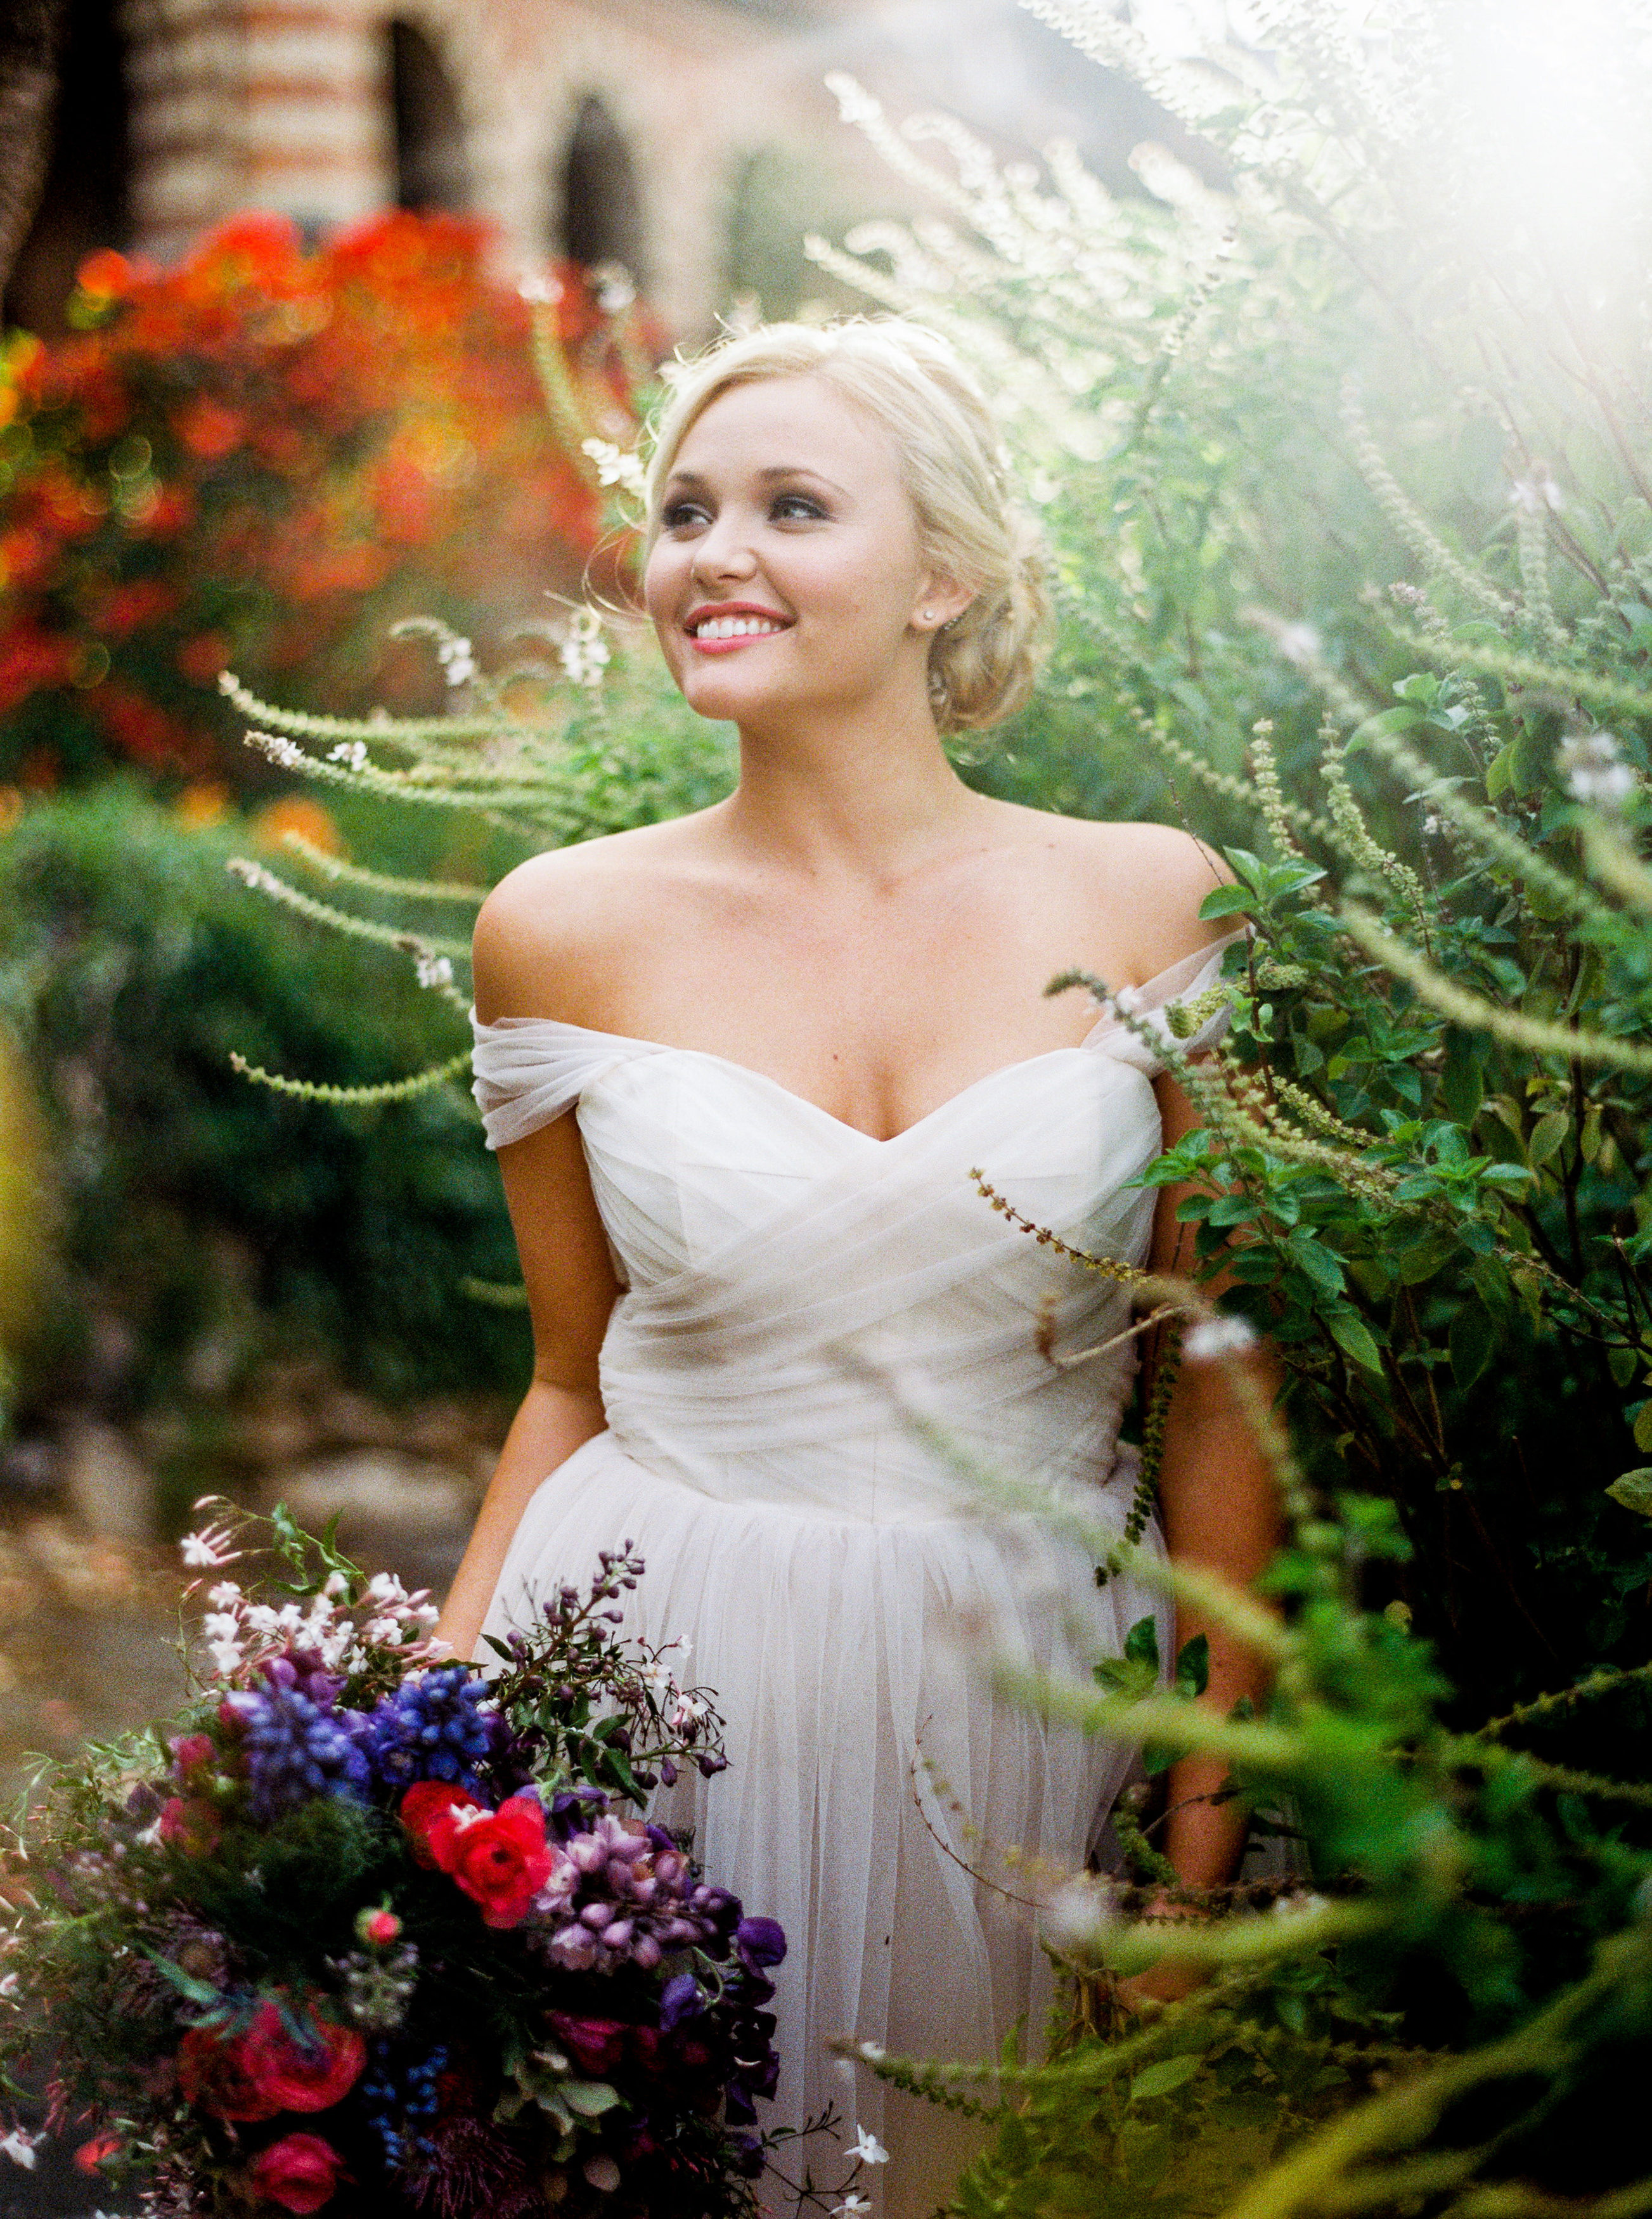 Married dating sites in Brisbane